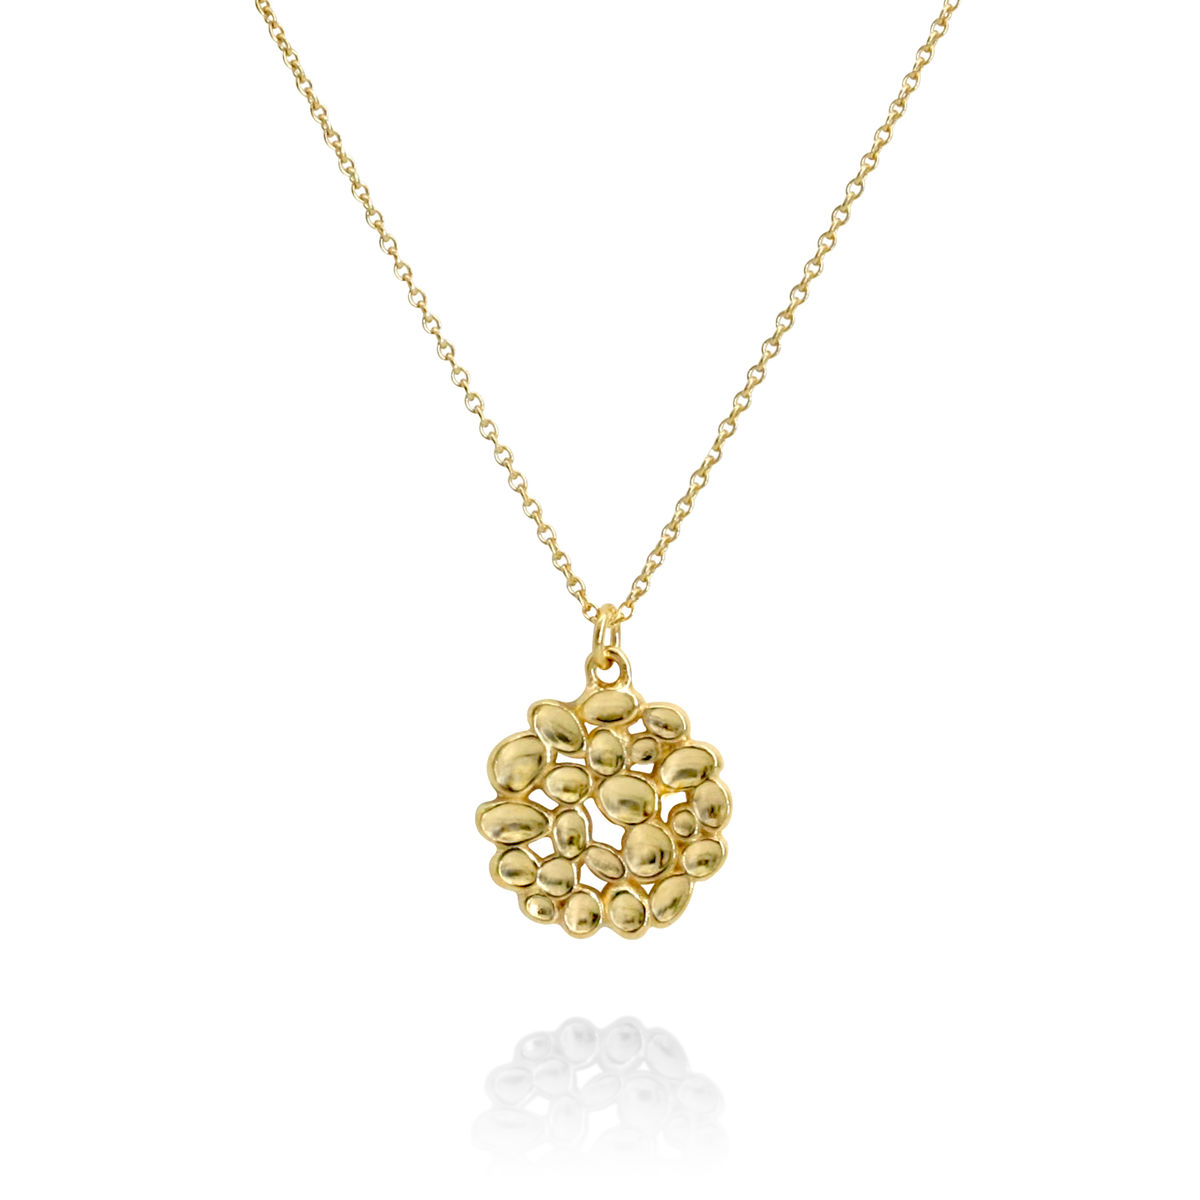 SHIMMER Array circle pendant - gold plated sterling silver - product images  of